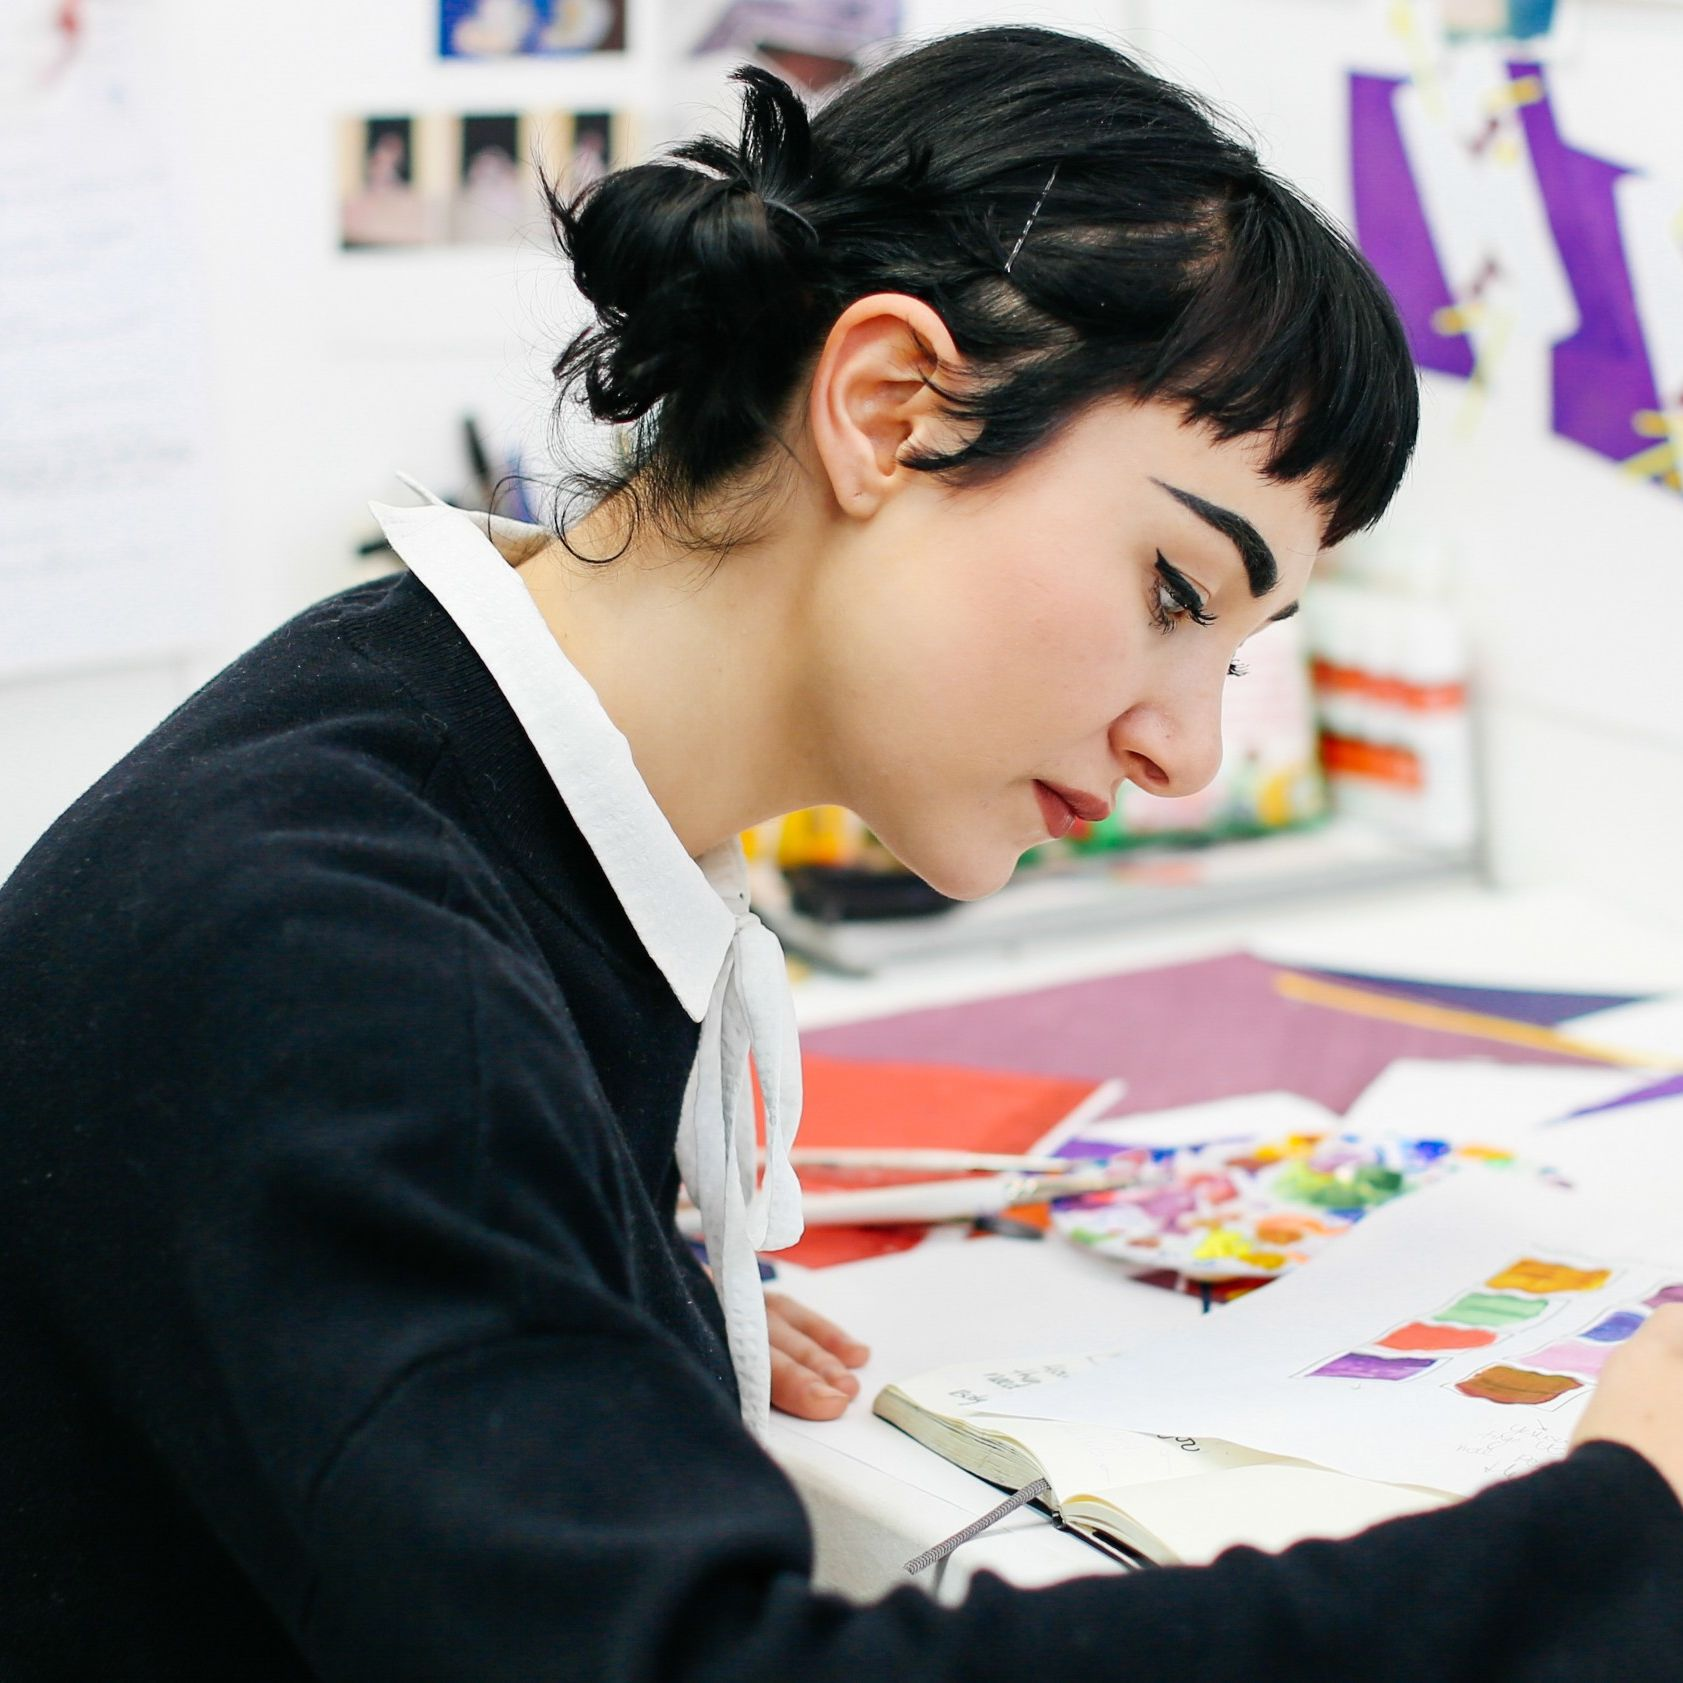 Student at a desk illustrating on a sketchbook